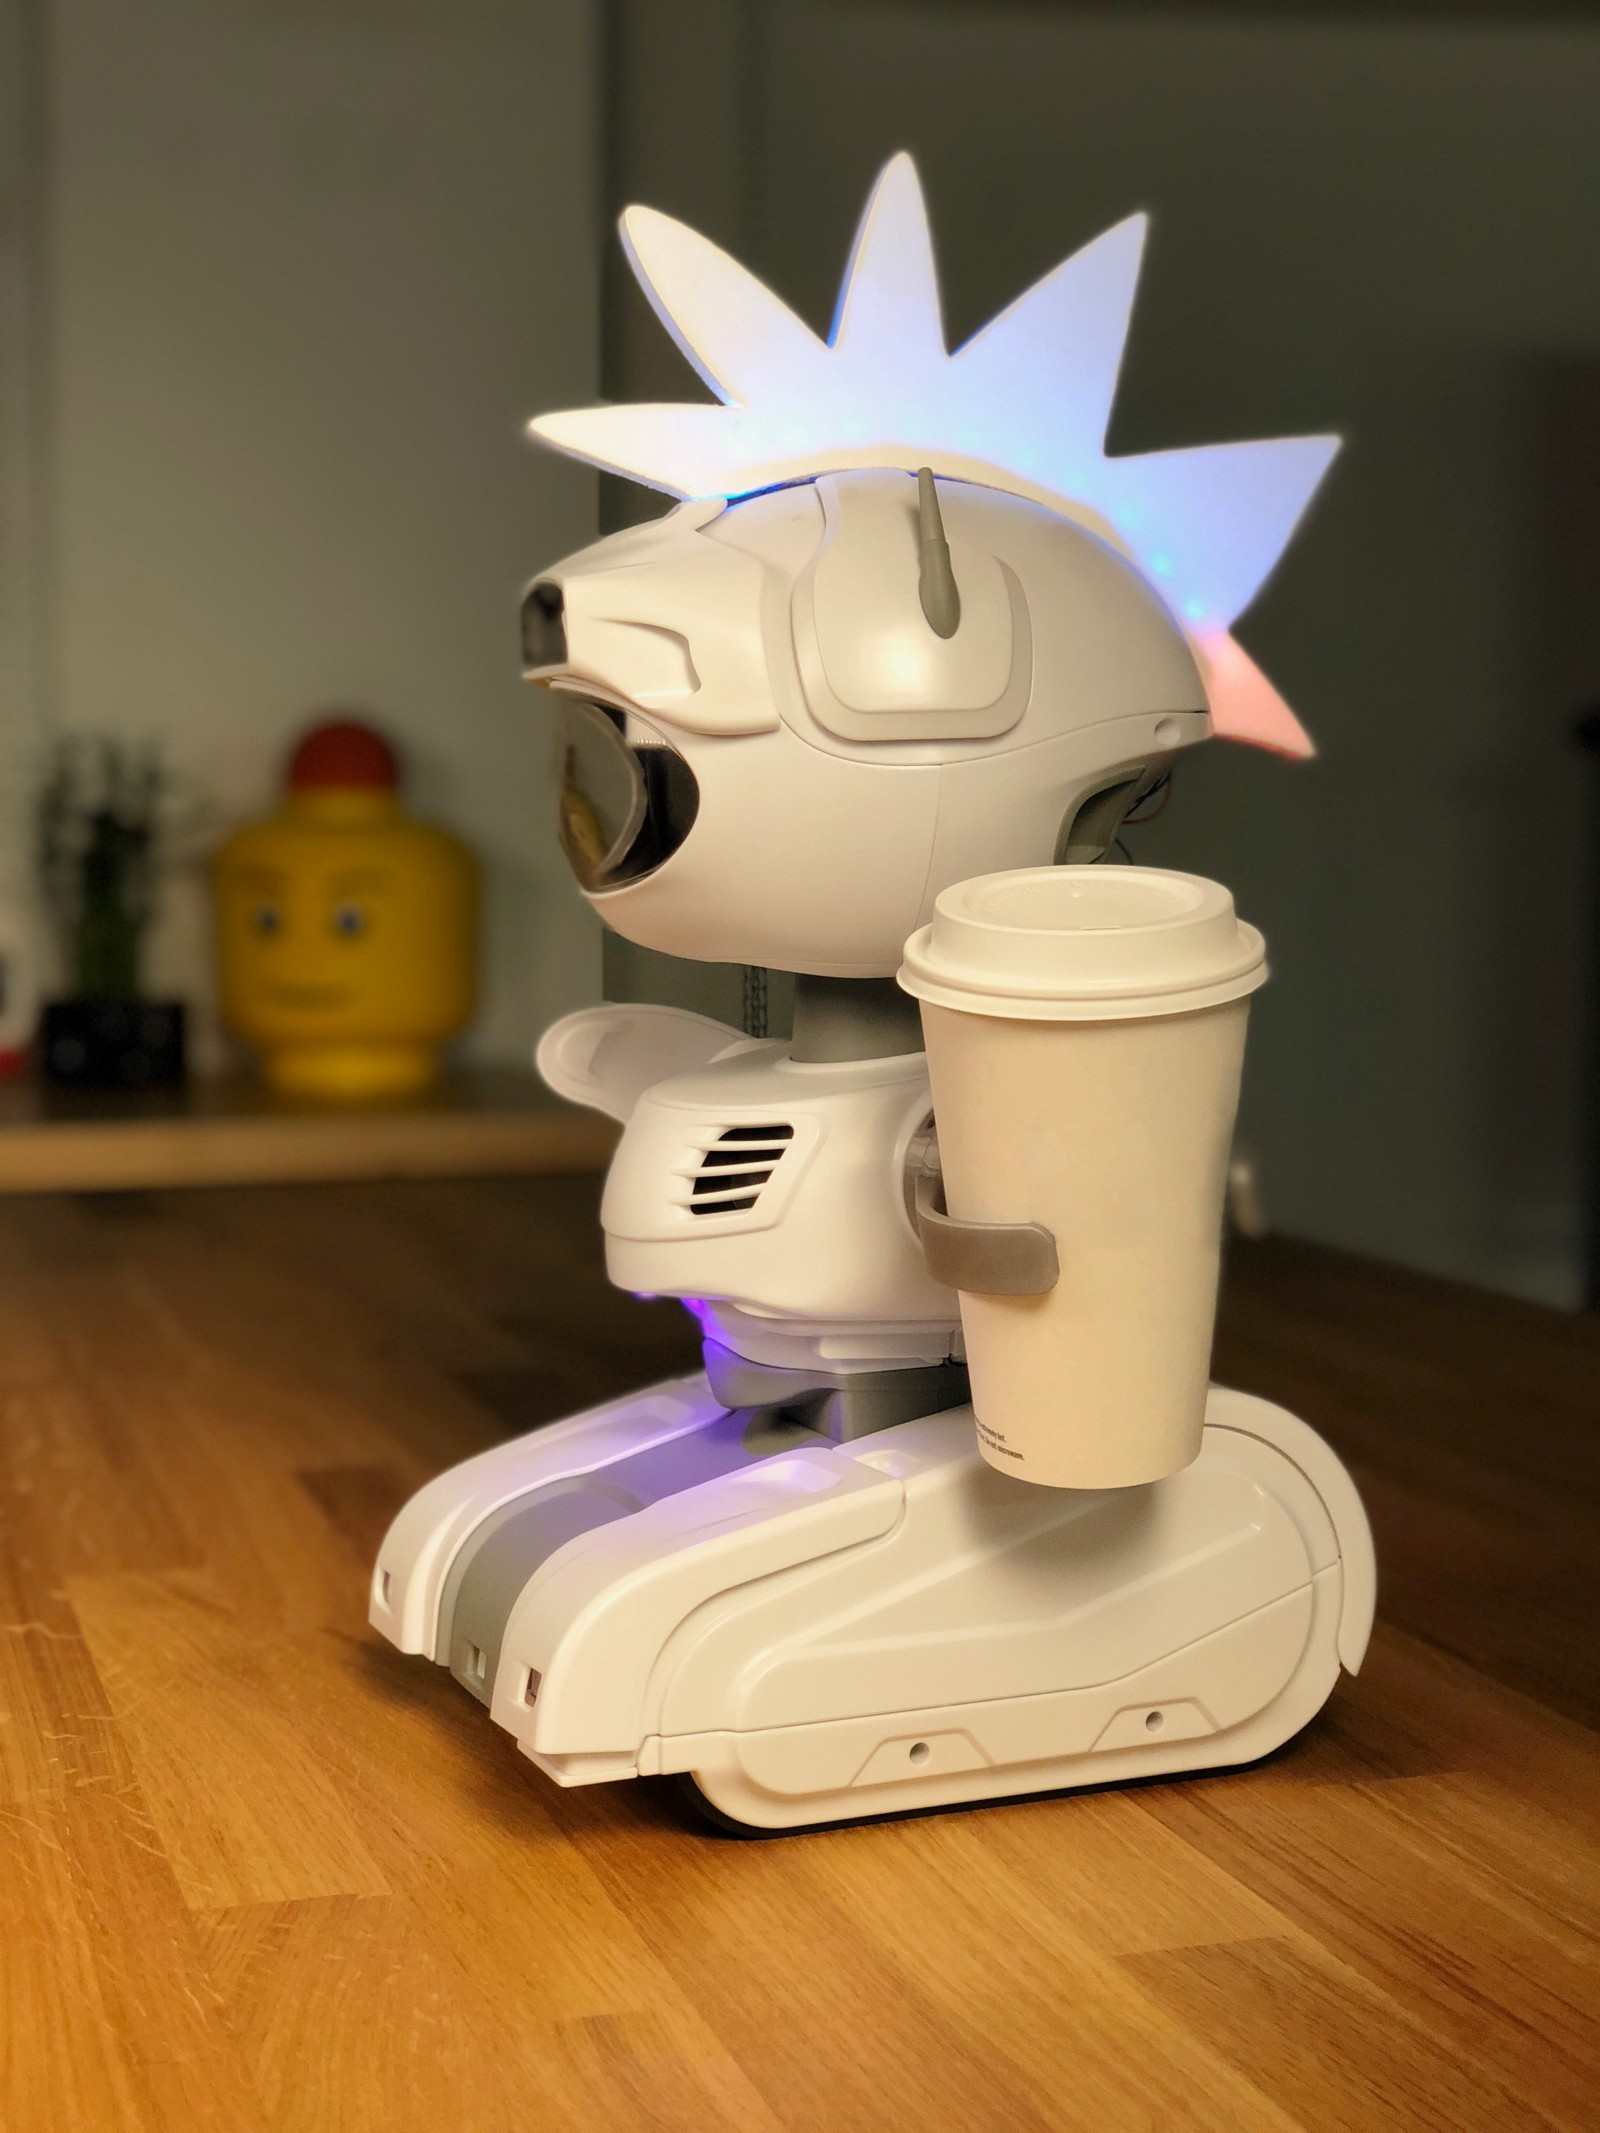 Misty II, complete with custom headgear and 3D printed cup holder.